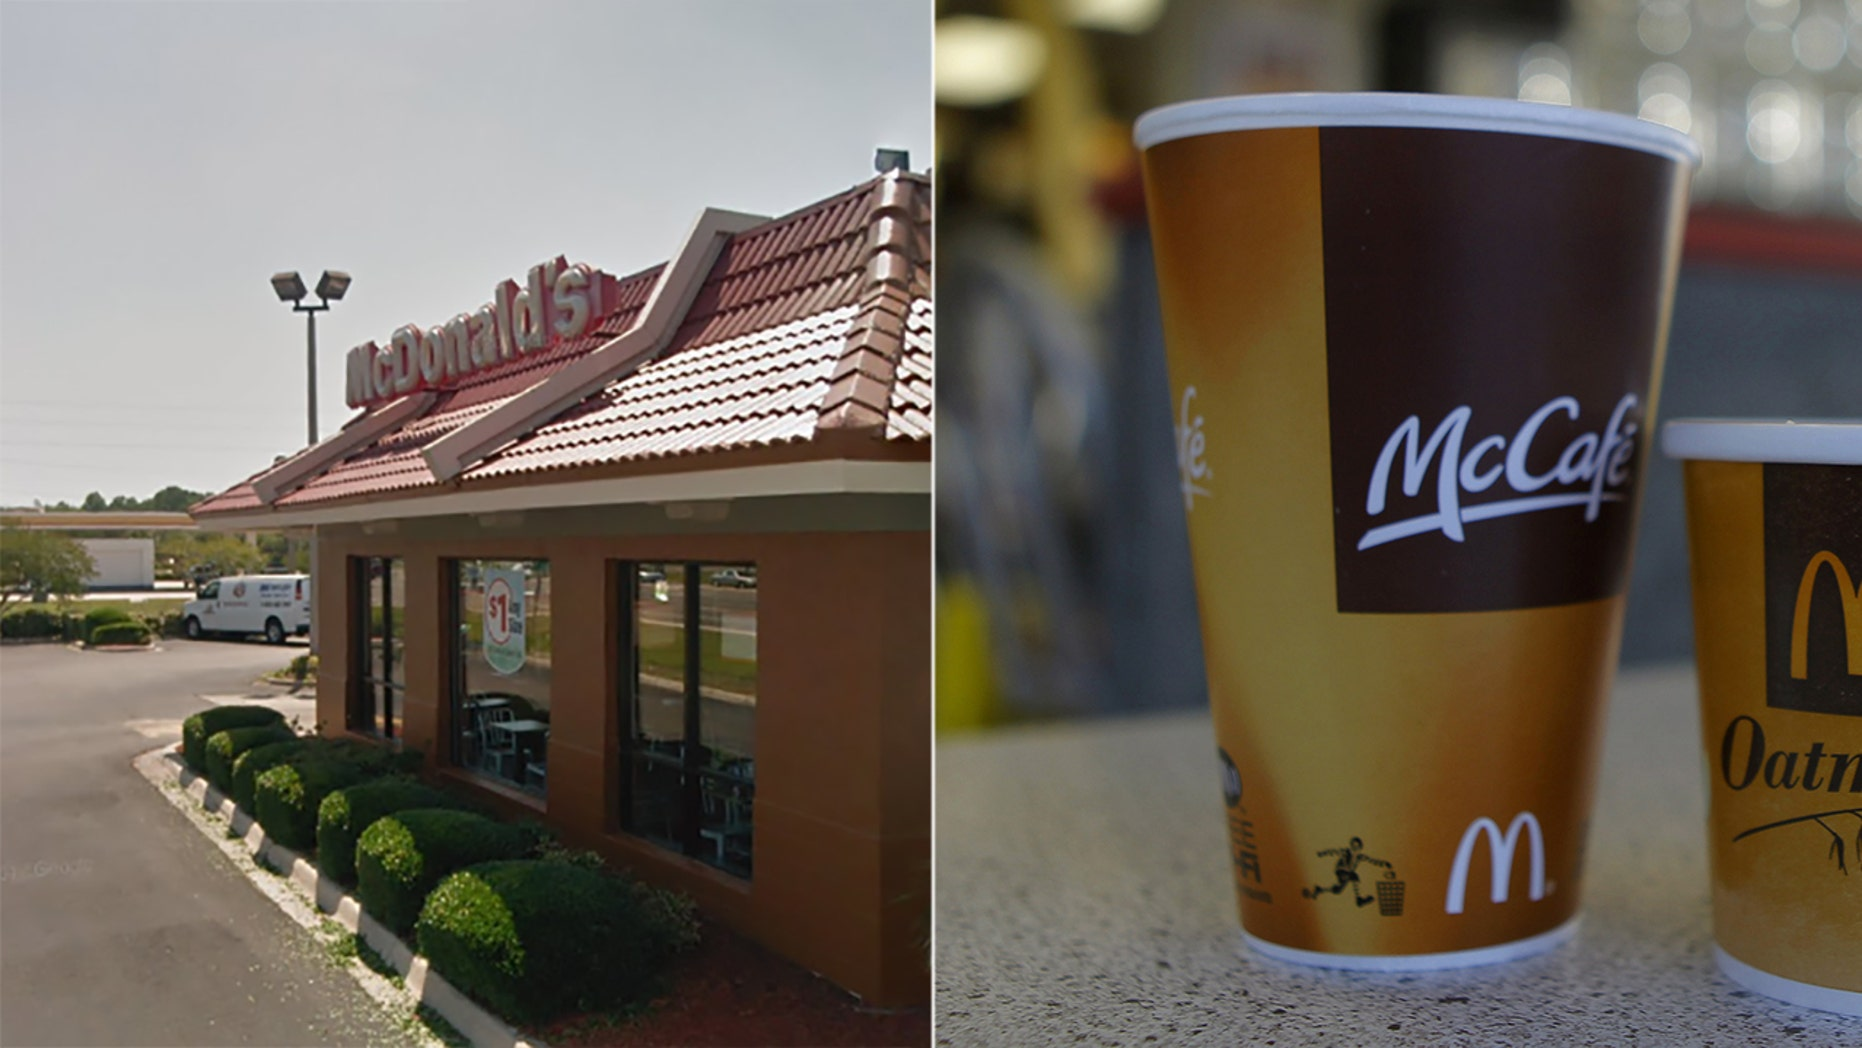 A witness at the Jacksonville McDonald's backs up the manager's claim that a customer threw coffee at her.